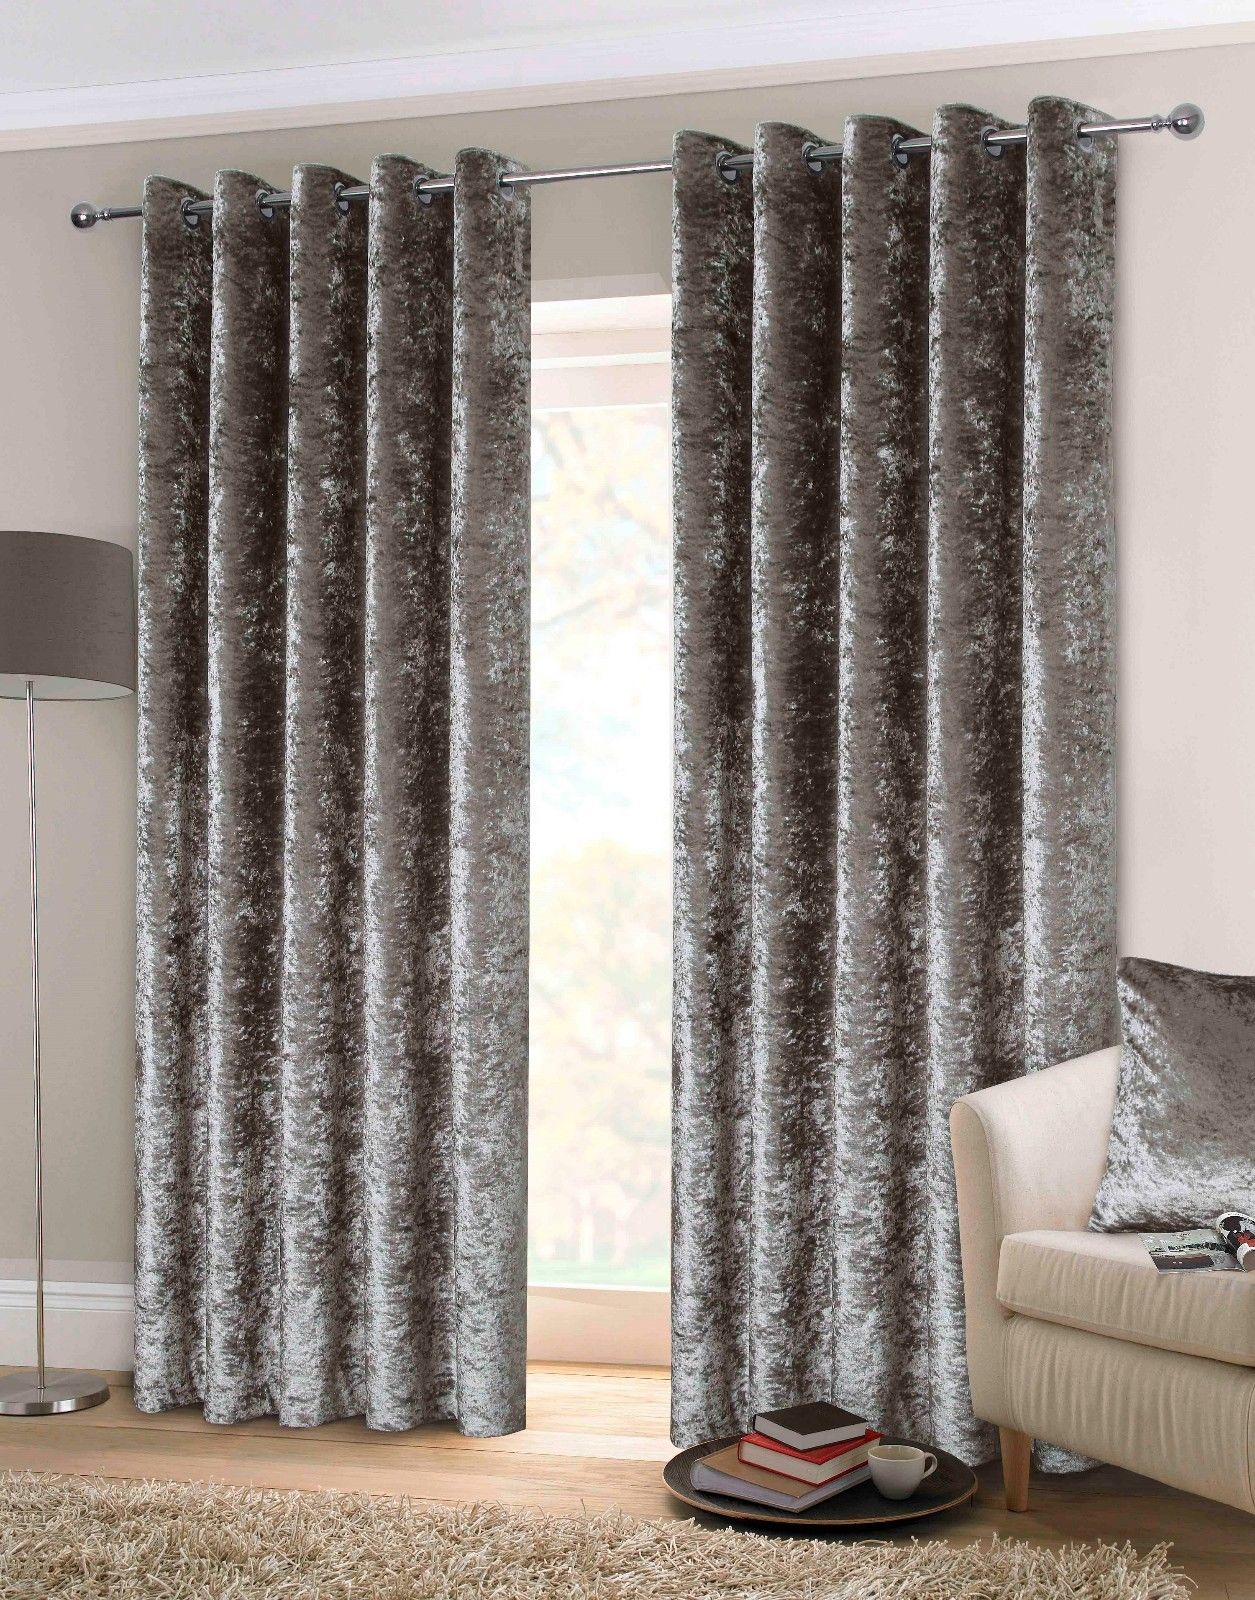 Rapport Luxury Heavy Weight Fully Lined Eyelet Top Crushed Velvet Curtains Silver 4 Sizes Available